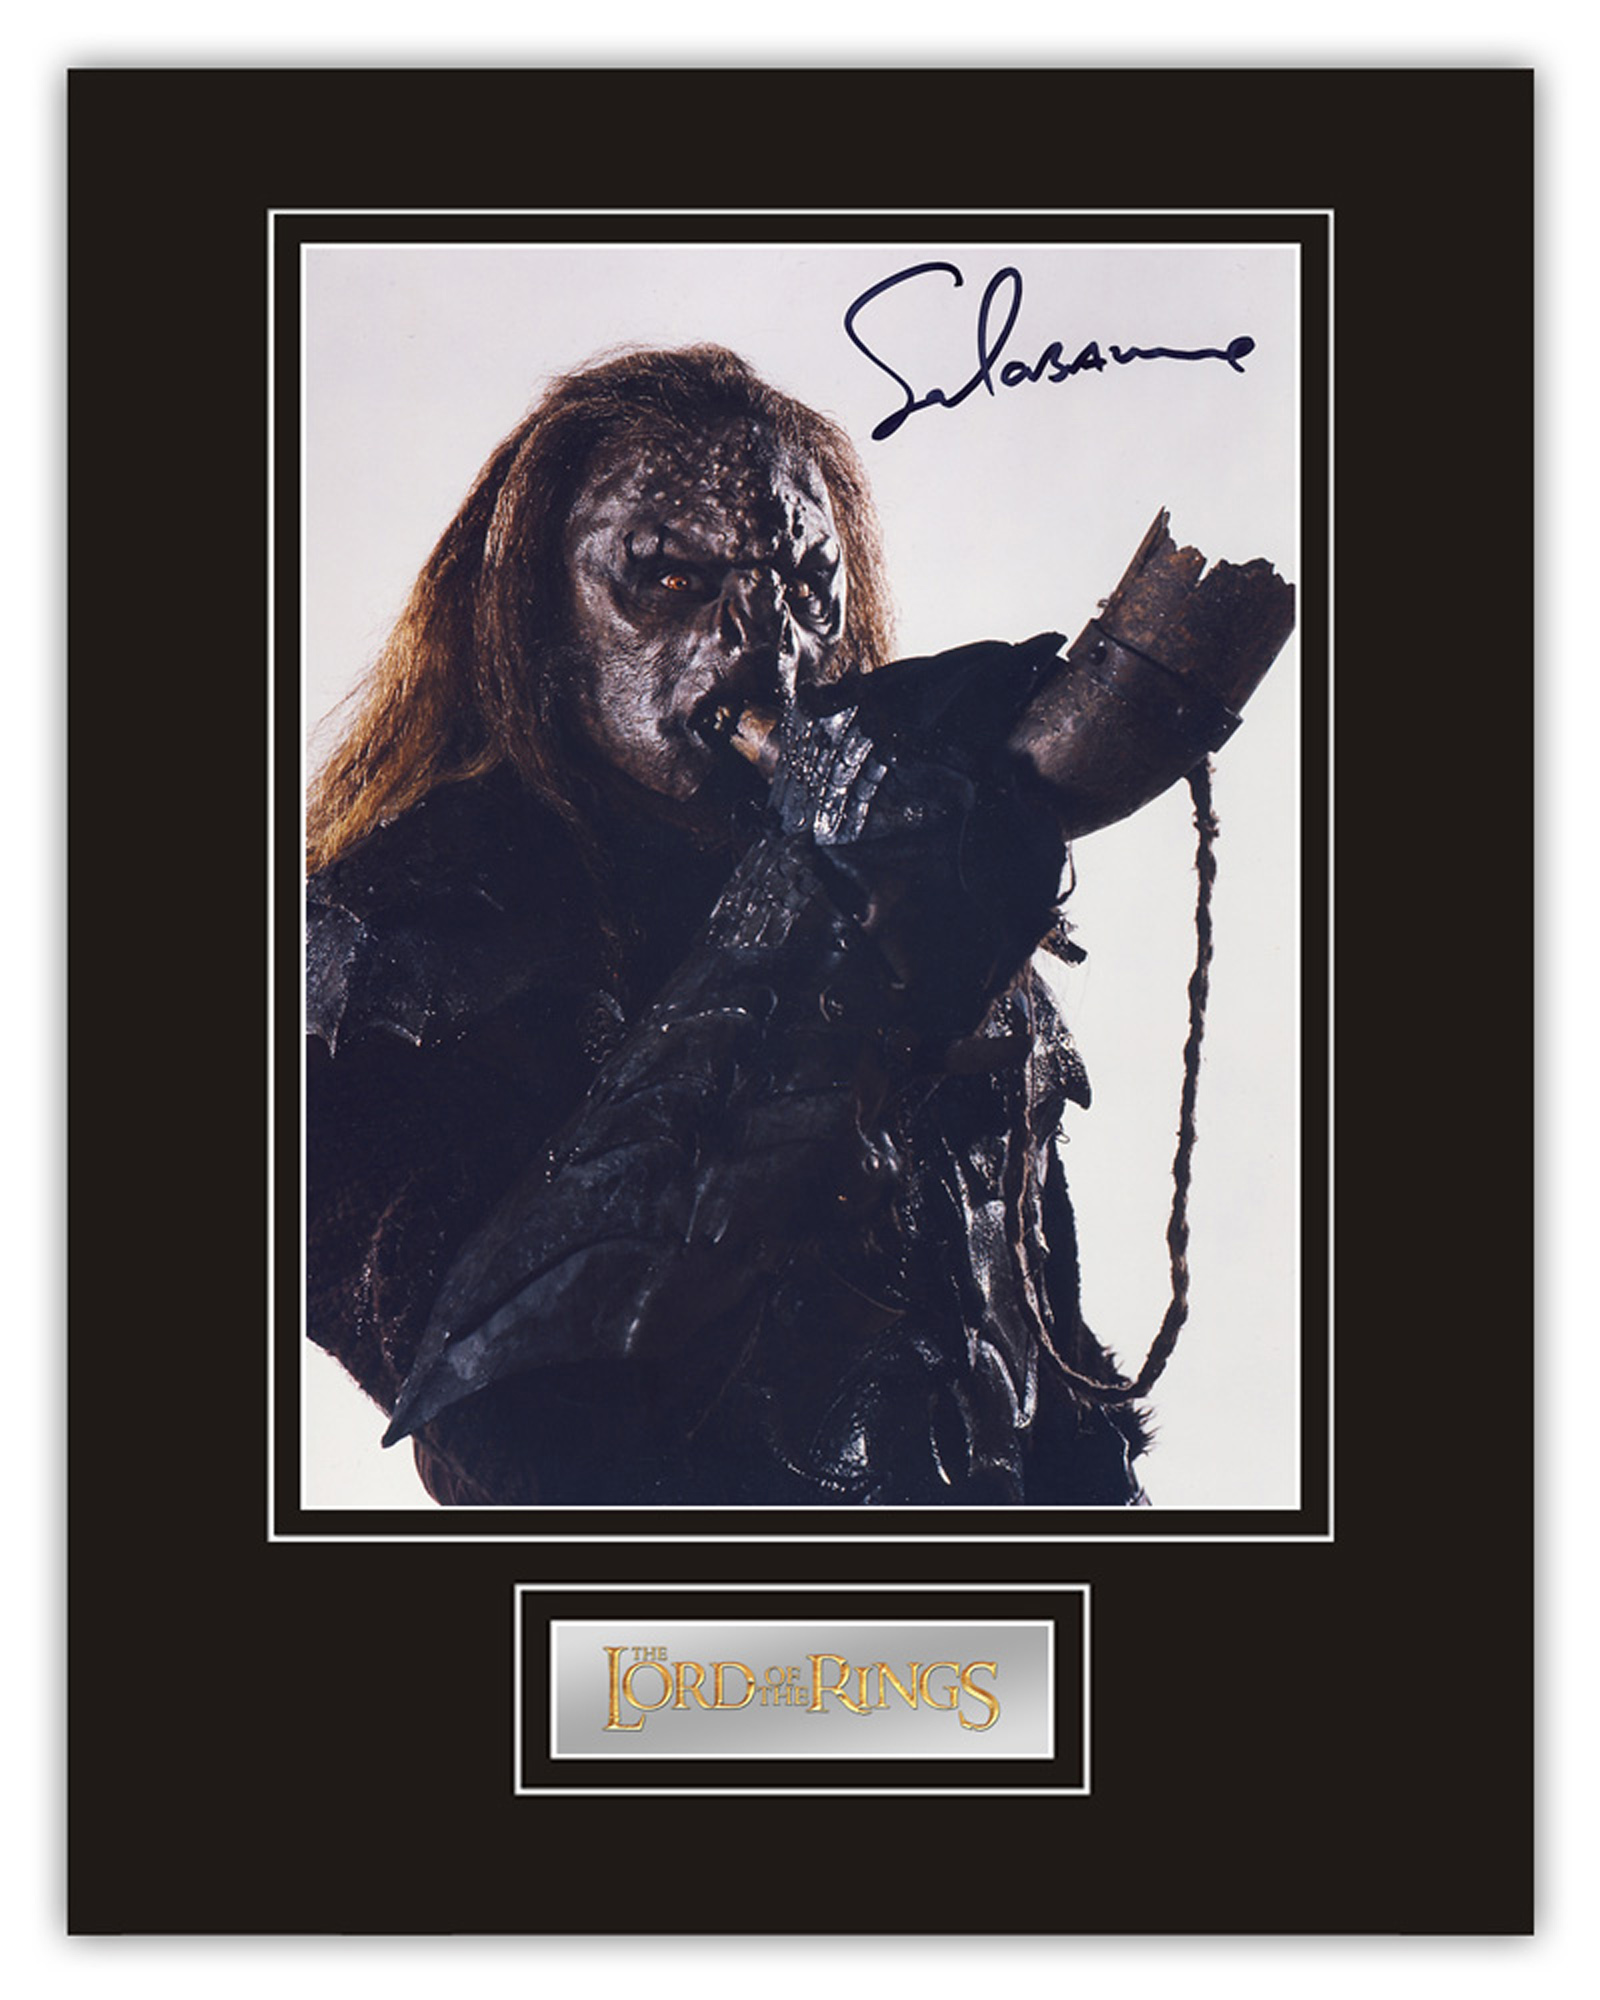 Stunning Display! Lord of the Rings Sala Baker hand signed professionally mounted display. This